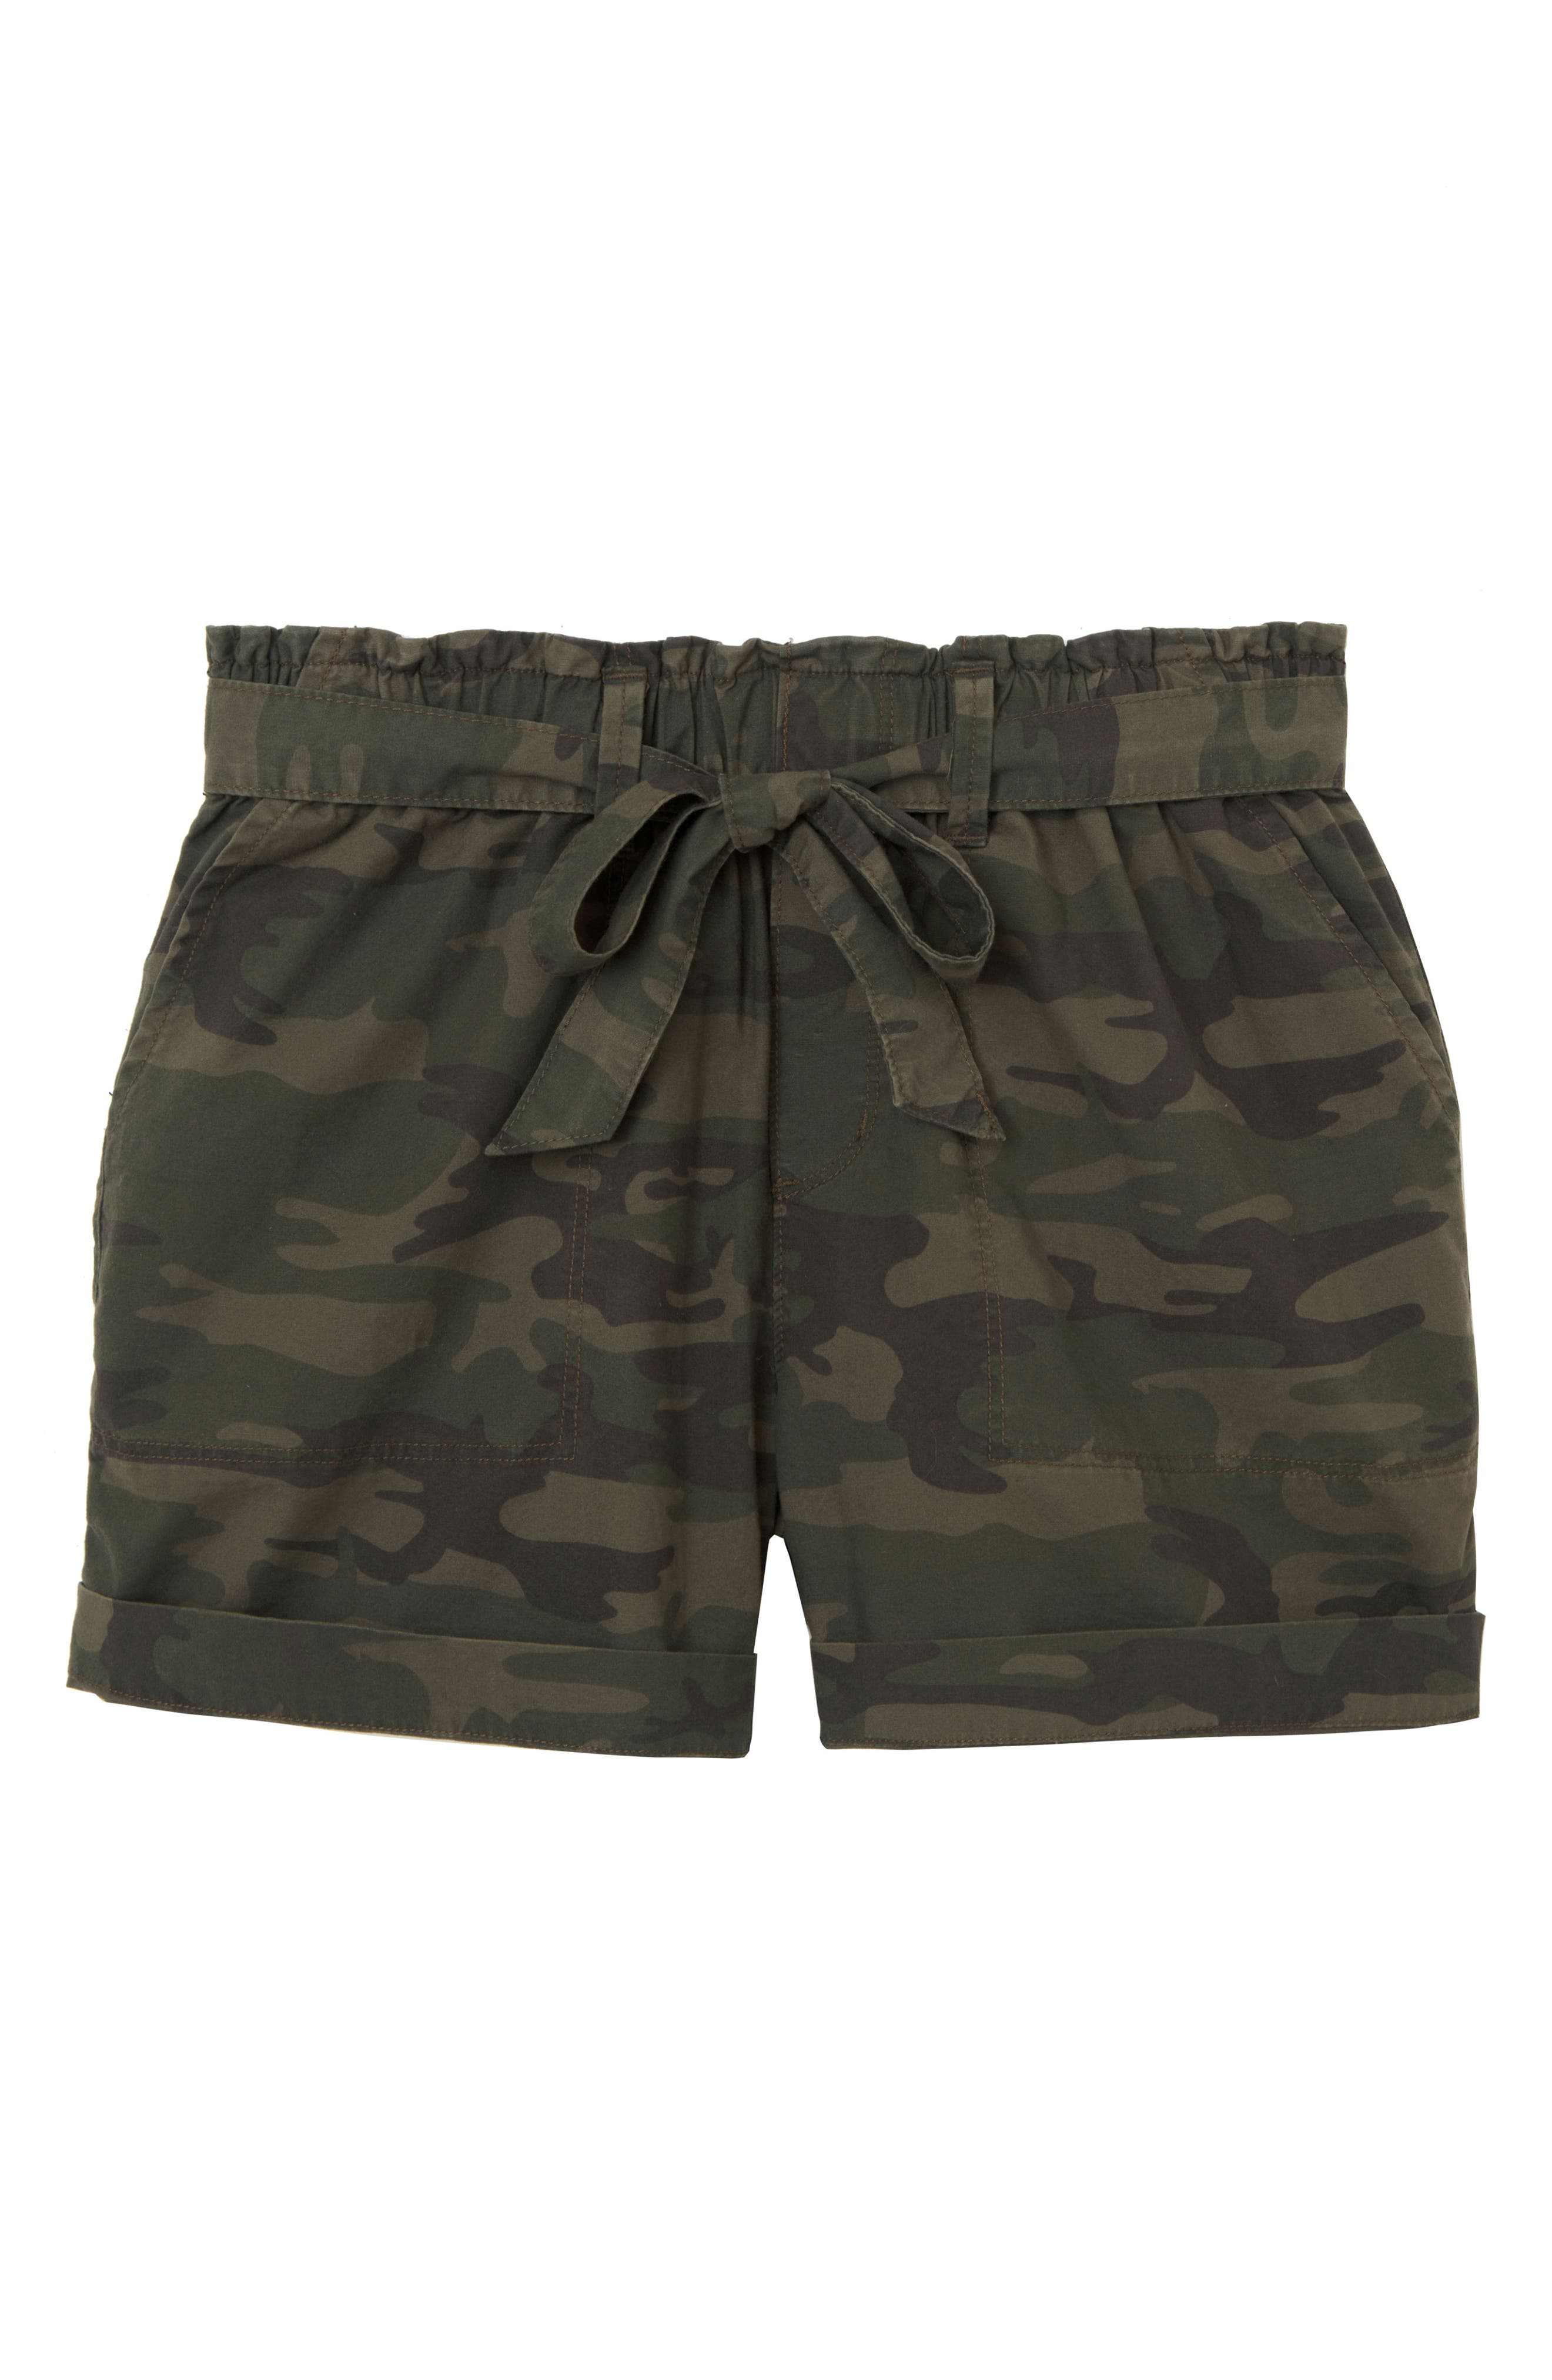 Daydreamer Stretch Cotton Camo Shorts,                             Alternate thumbnail 5, color,                             398